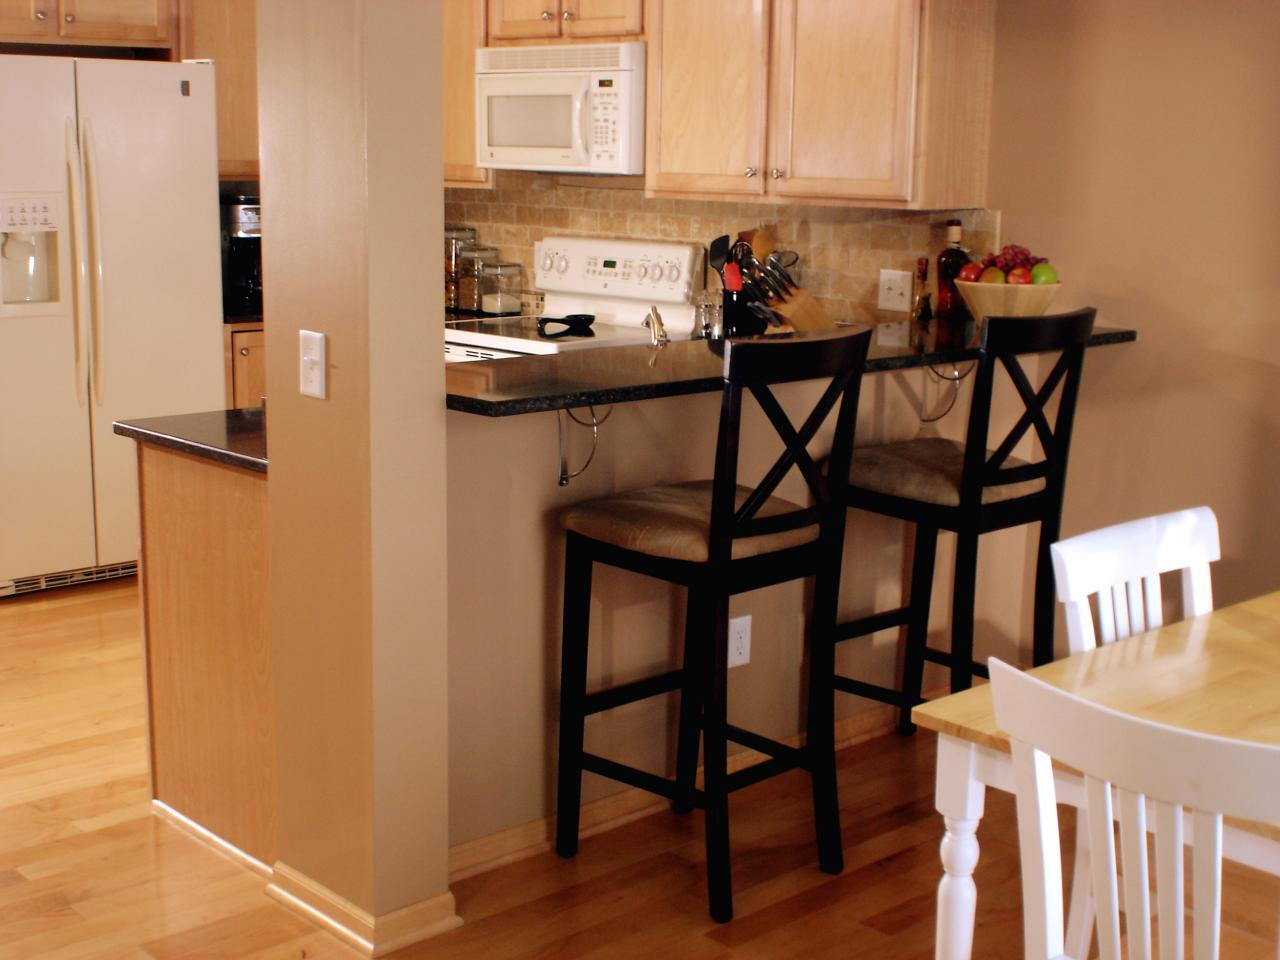 How to Create a Raised Bar in Your Kitchen | how-tos | DIY